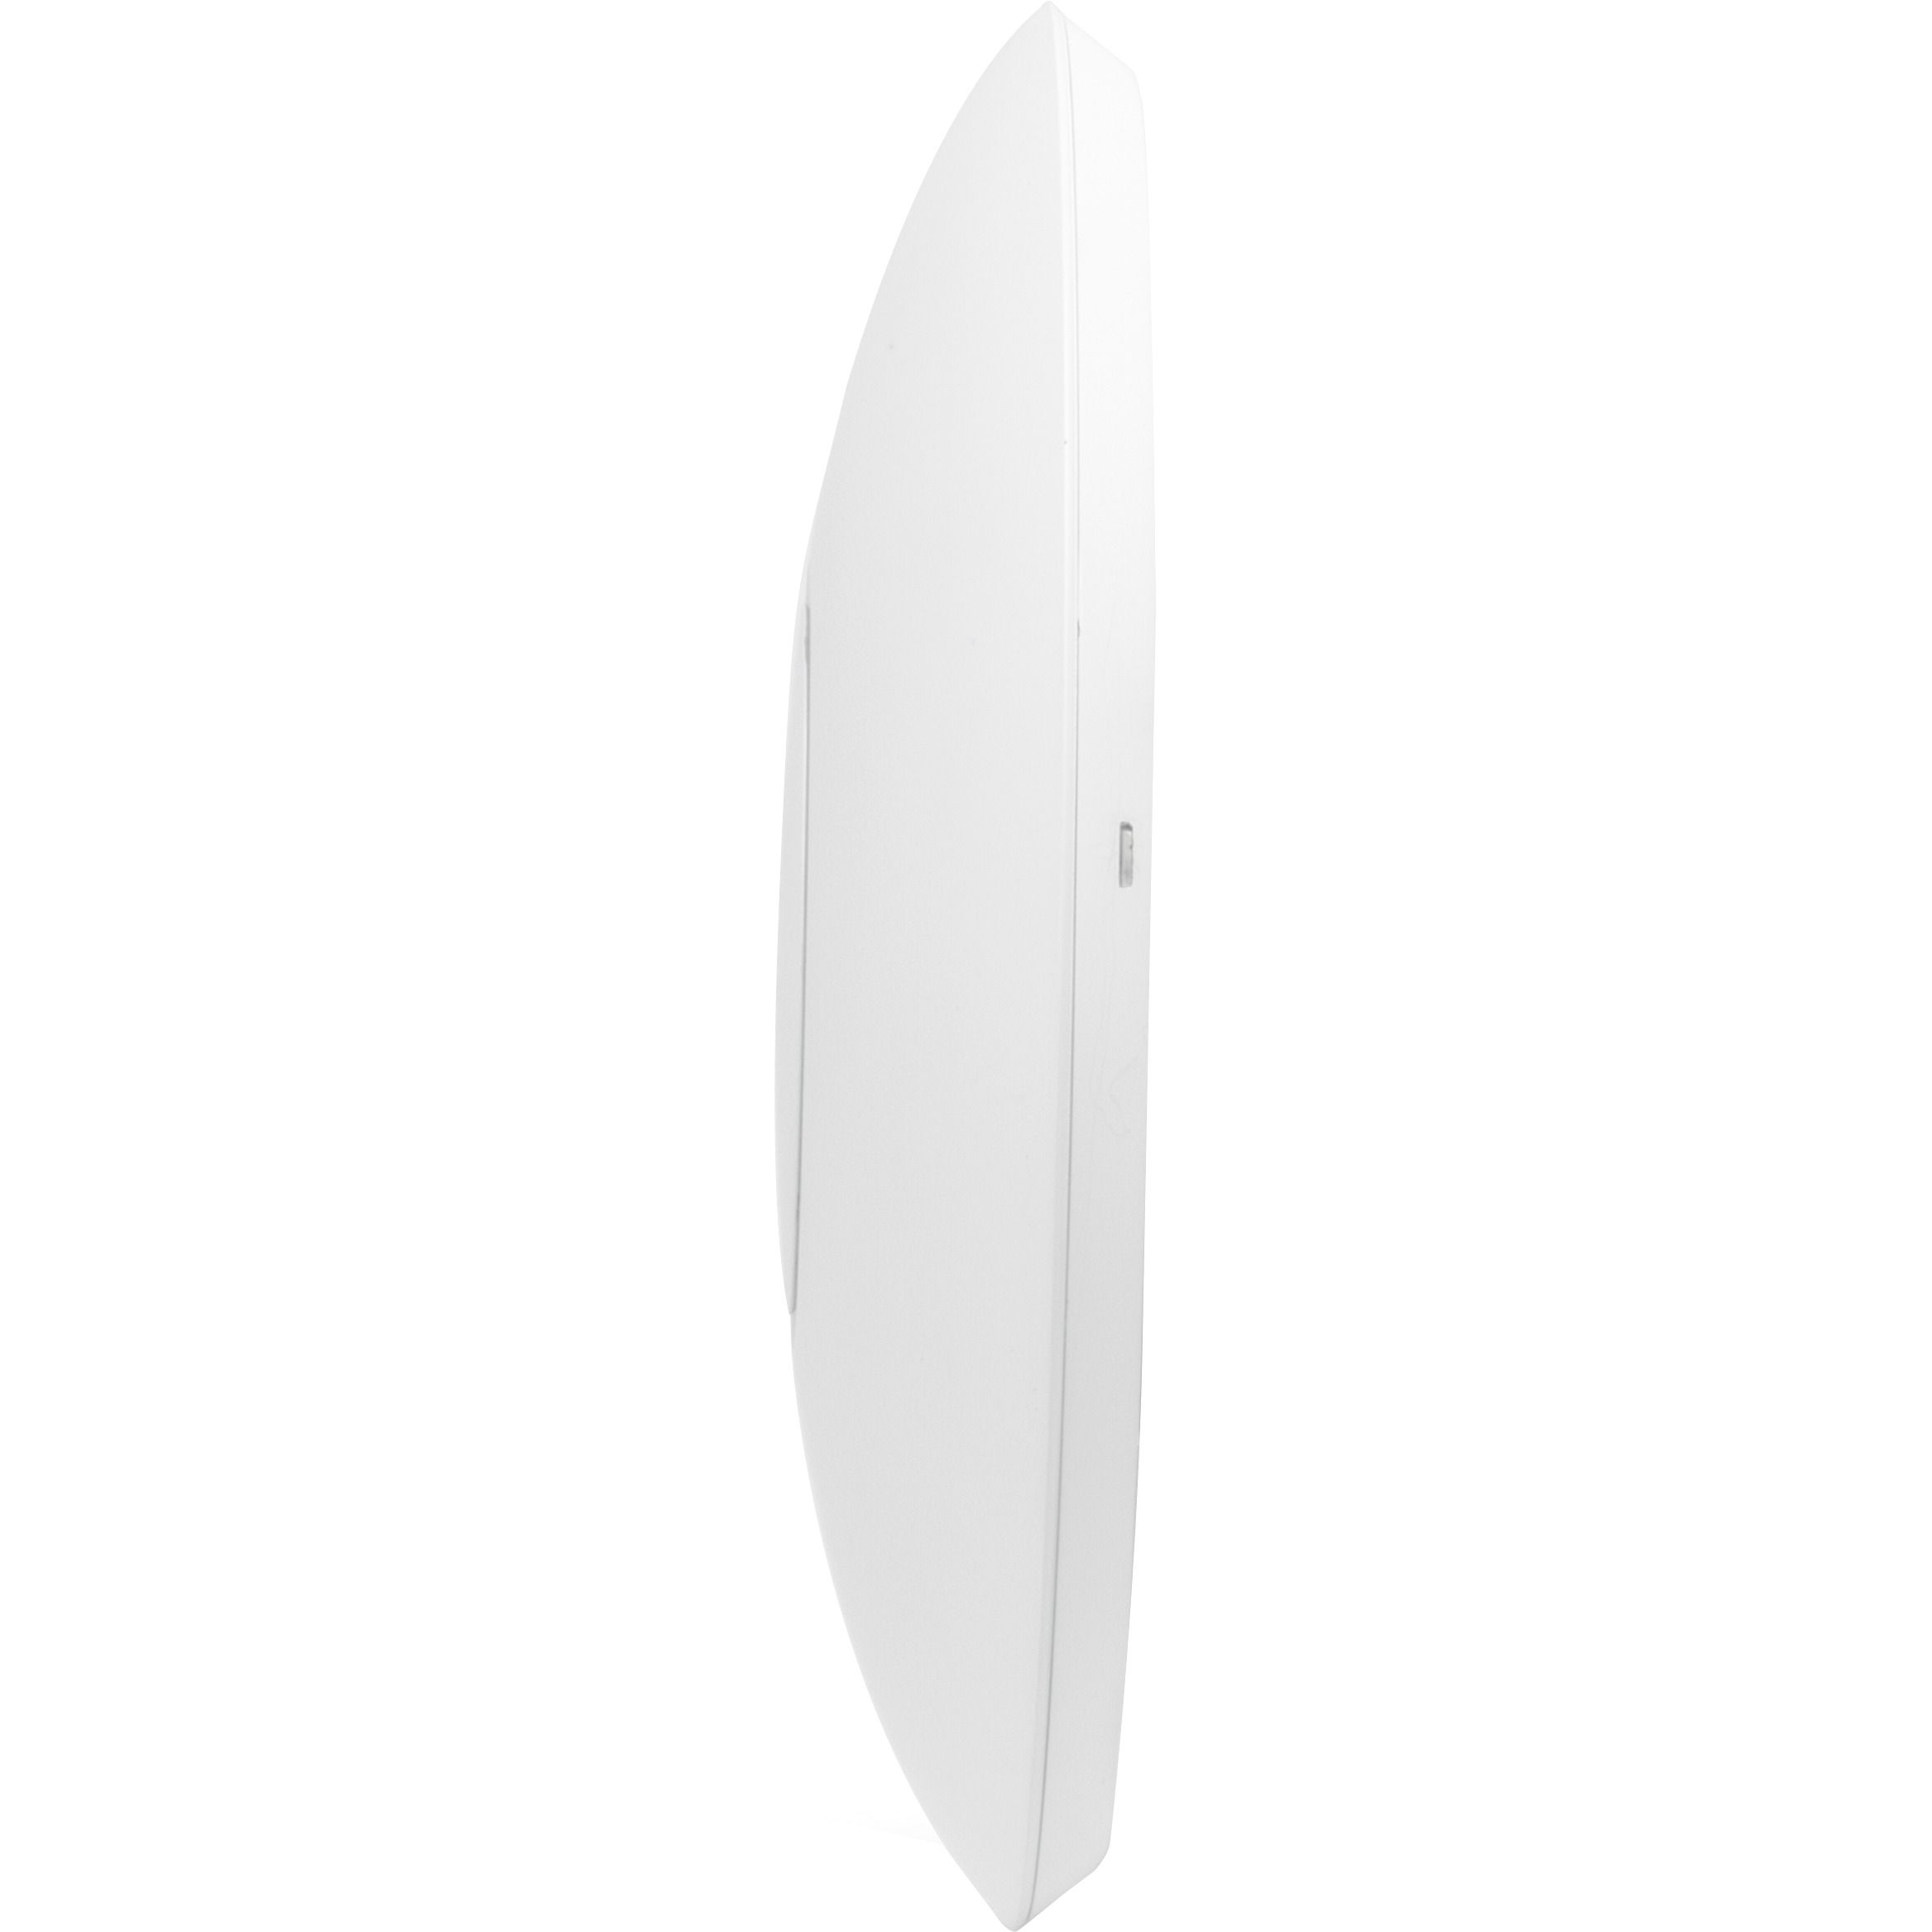 Ubiquiti UniFi UAP-AC-PRO IEEE 802.11ac 1300Mbit/s Wireless Access Point - Power Supply (Not Included) - 2.40 GHz, 5 GHz - 3 x Antenna(s) - 3 x Internal Antenna(s) - MIMO Technology - 2 x Network (RJ-45) - Wall Mountable, Ceiling Mountable - 5 Pack 3